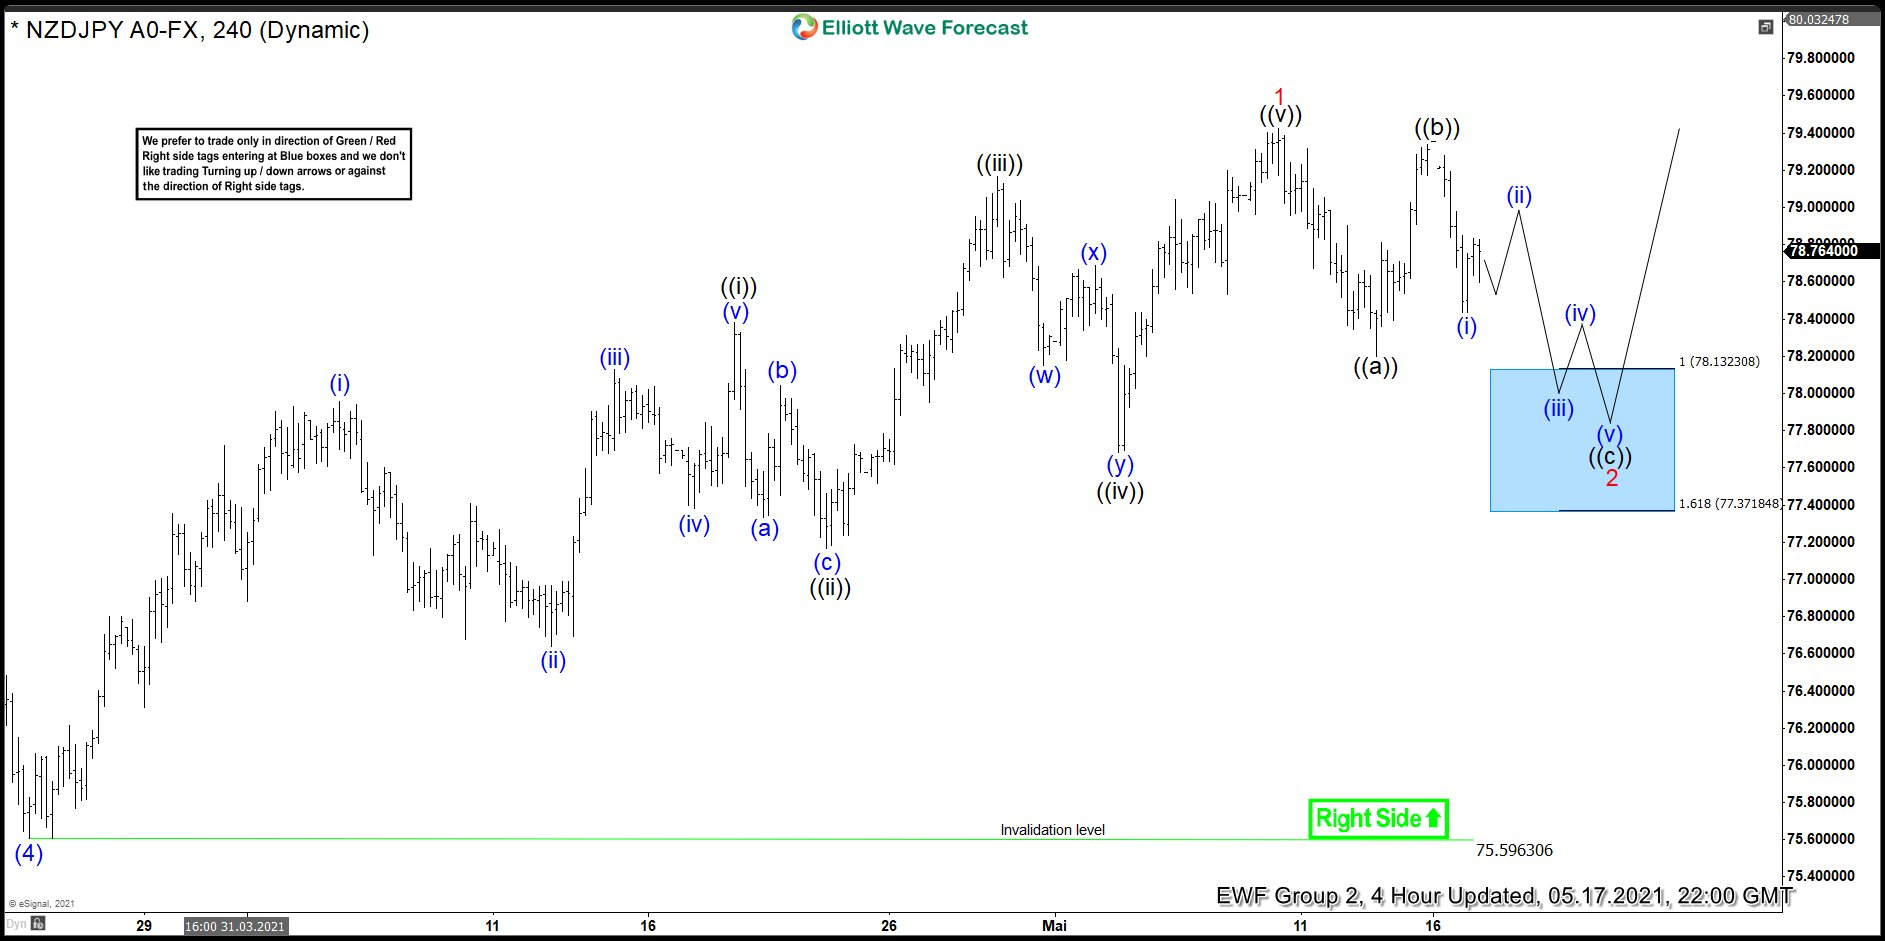 NZDJPY Another Buying Opportunity At The Blue Box Area